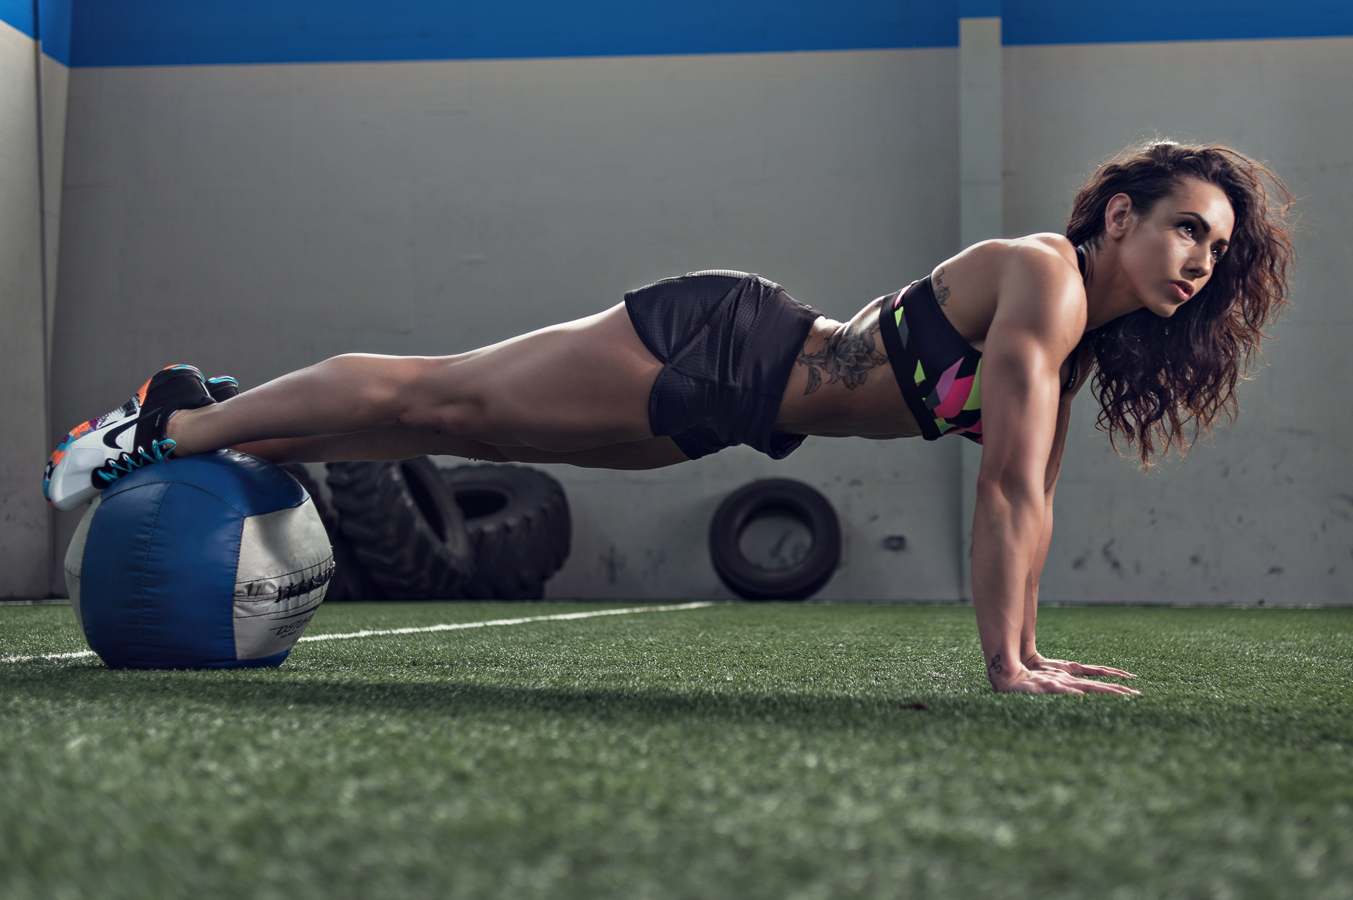 Fit women working out with a medicine ball.  Kenneth M. Ruggiano is a Sports and Fitness Photographer based in Tulsa Oklahoma